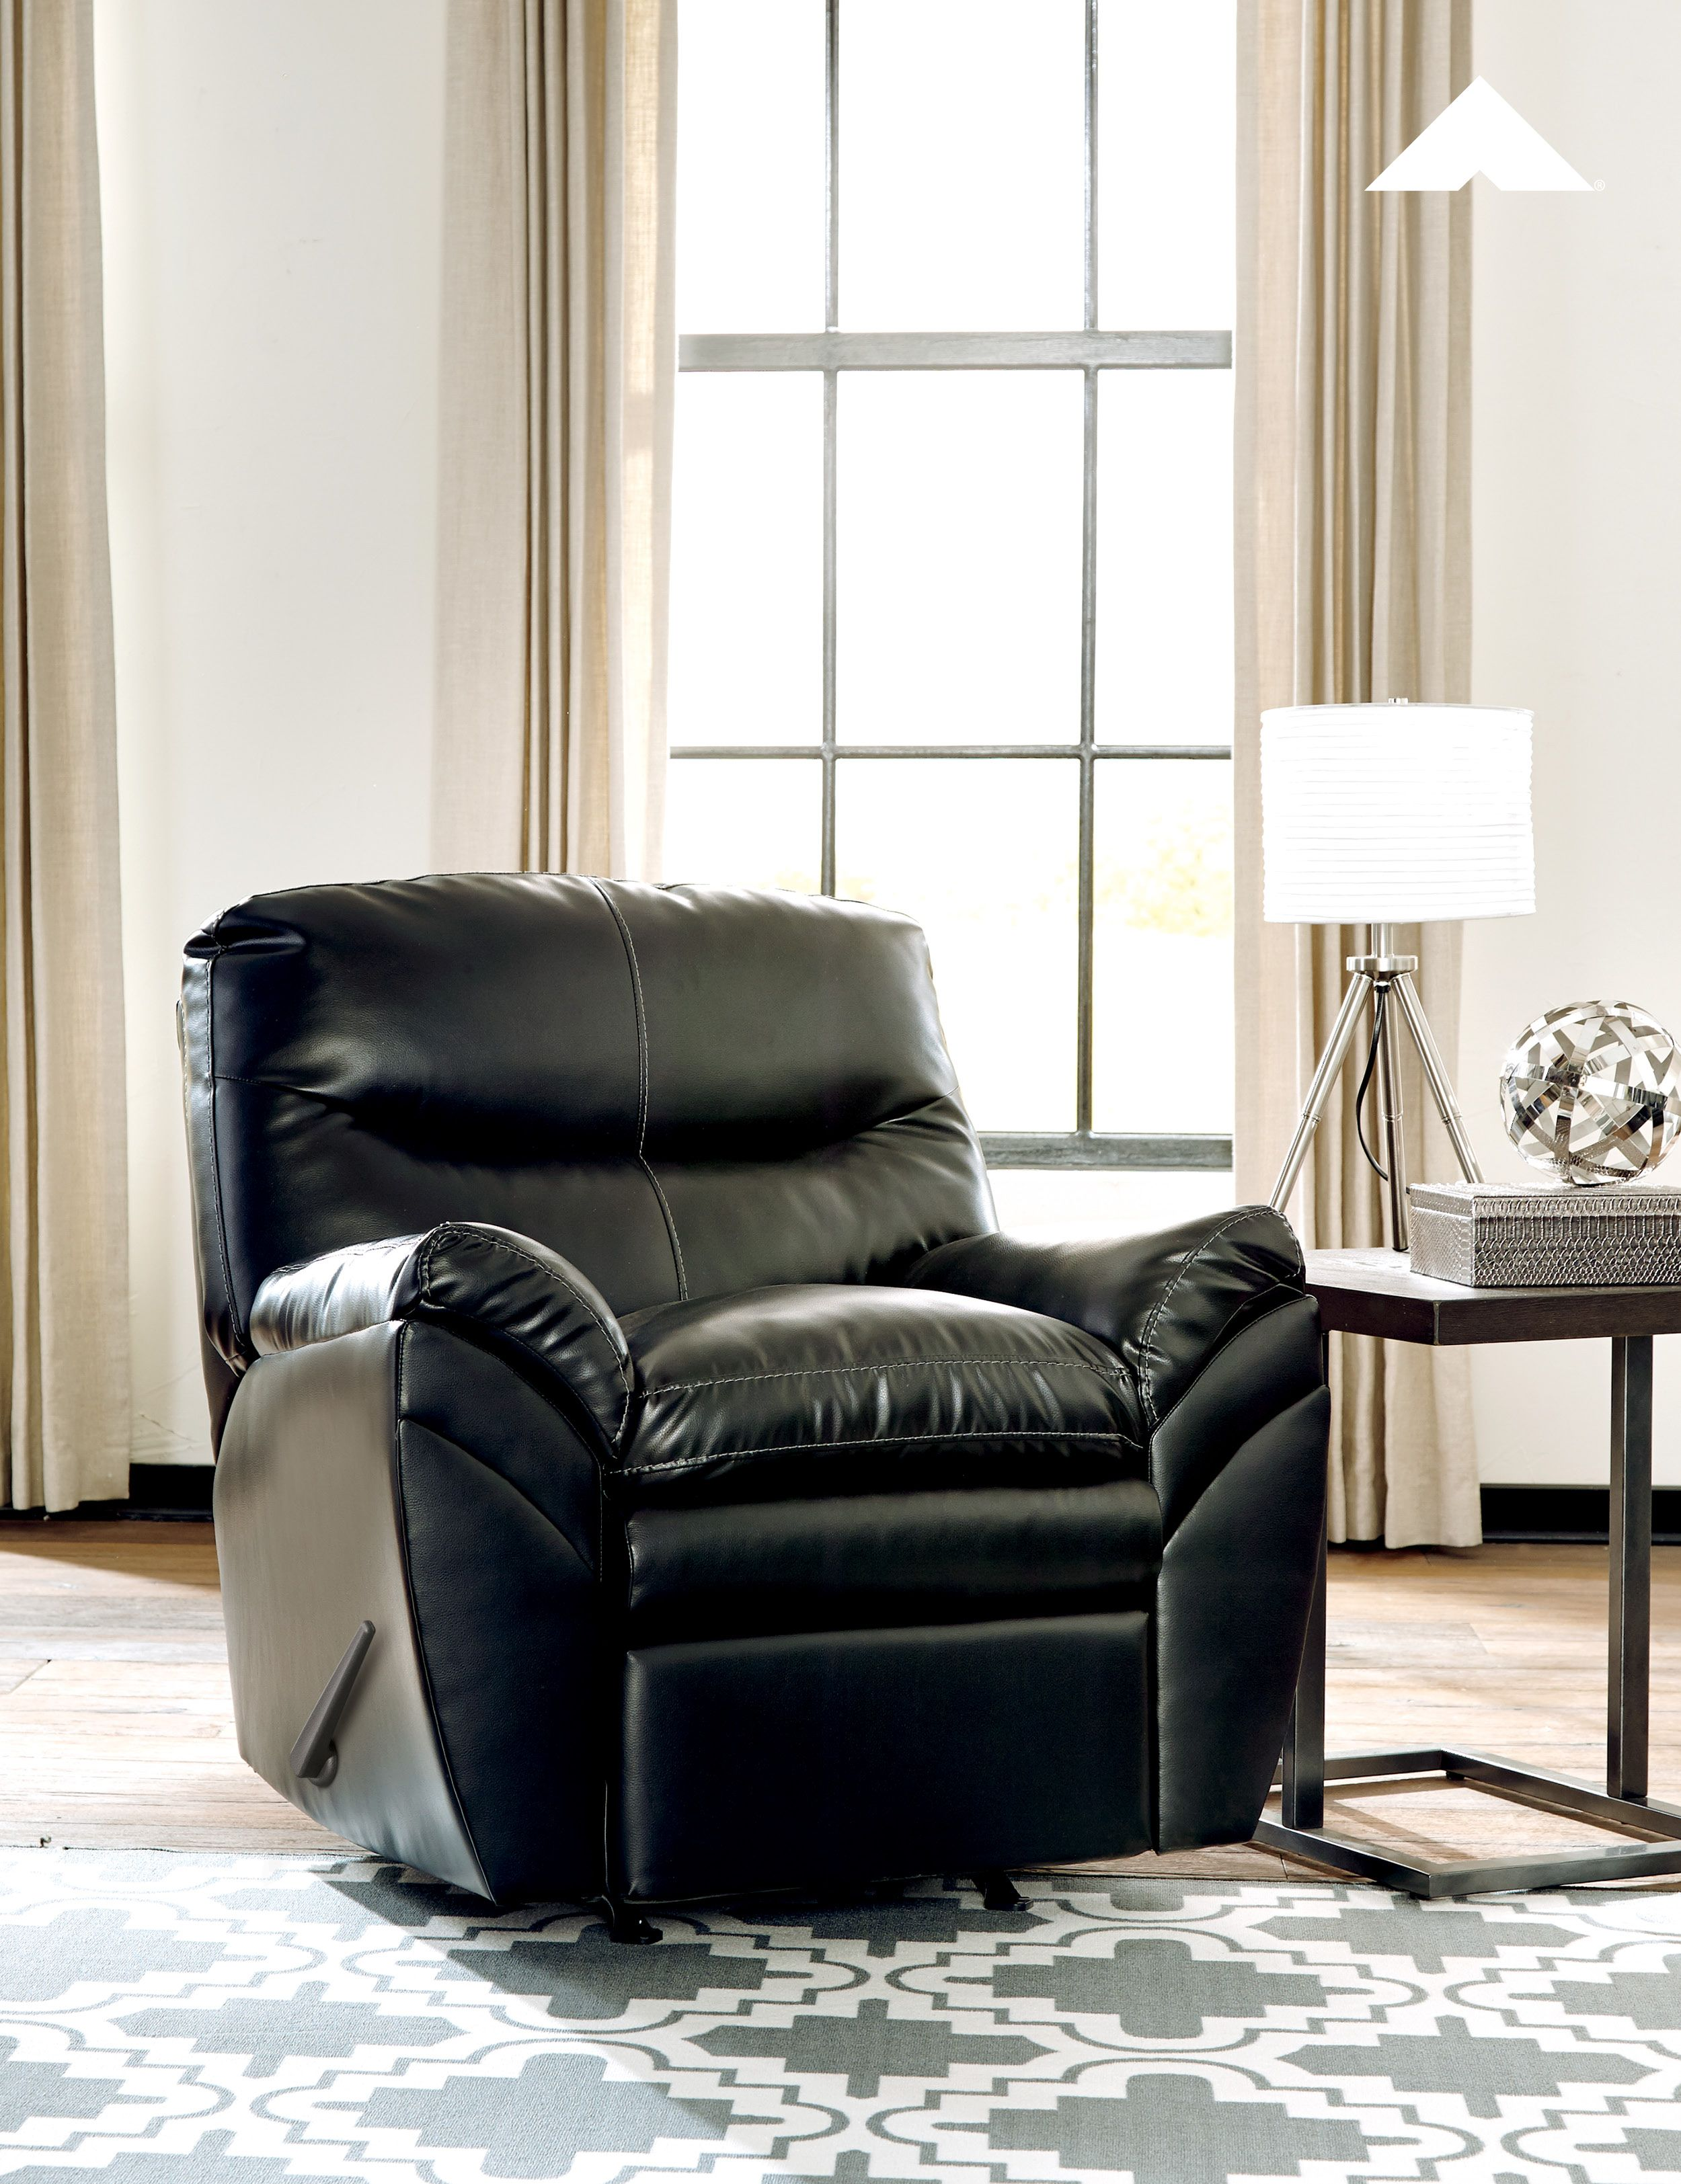 Tassler black rocker recliner by ashley furniture ashleyfurniture livingroom recliners relaxing falldecor